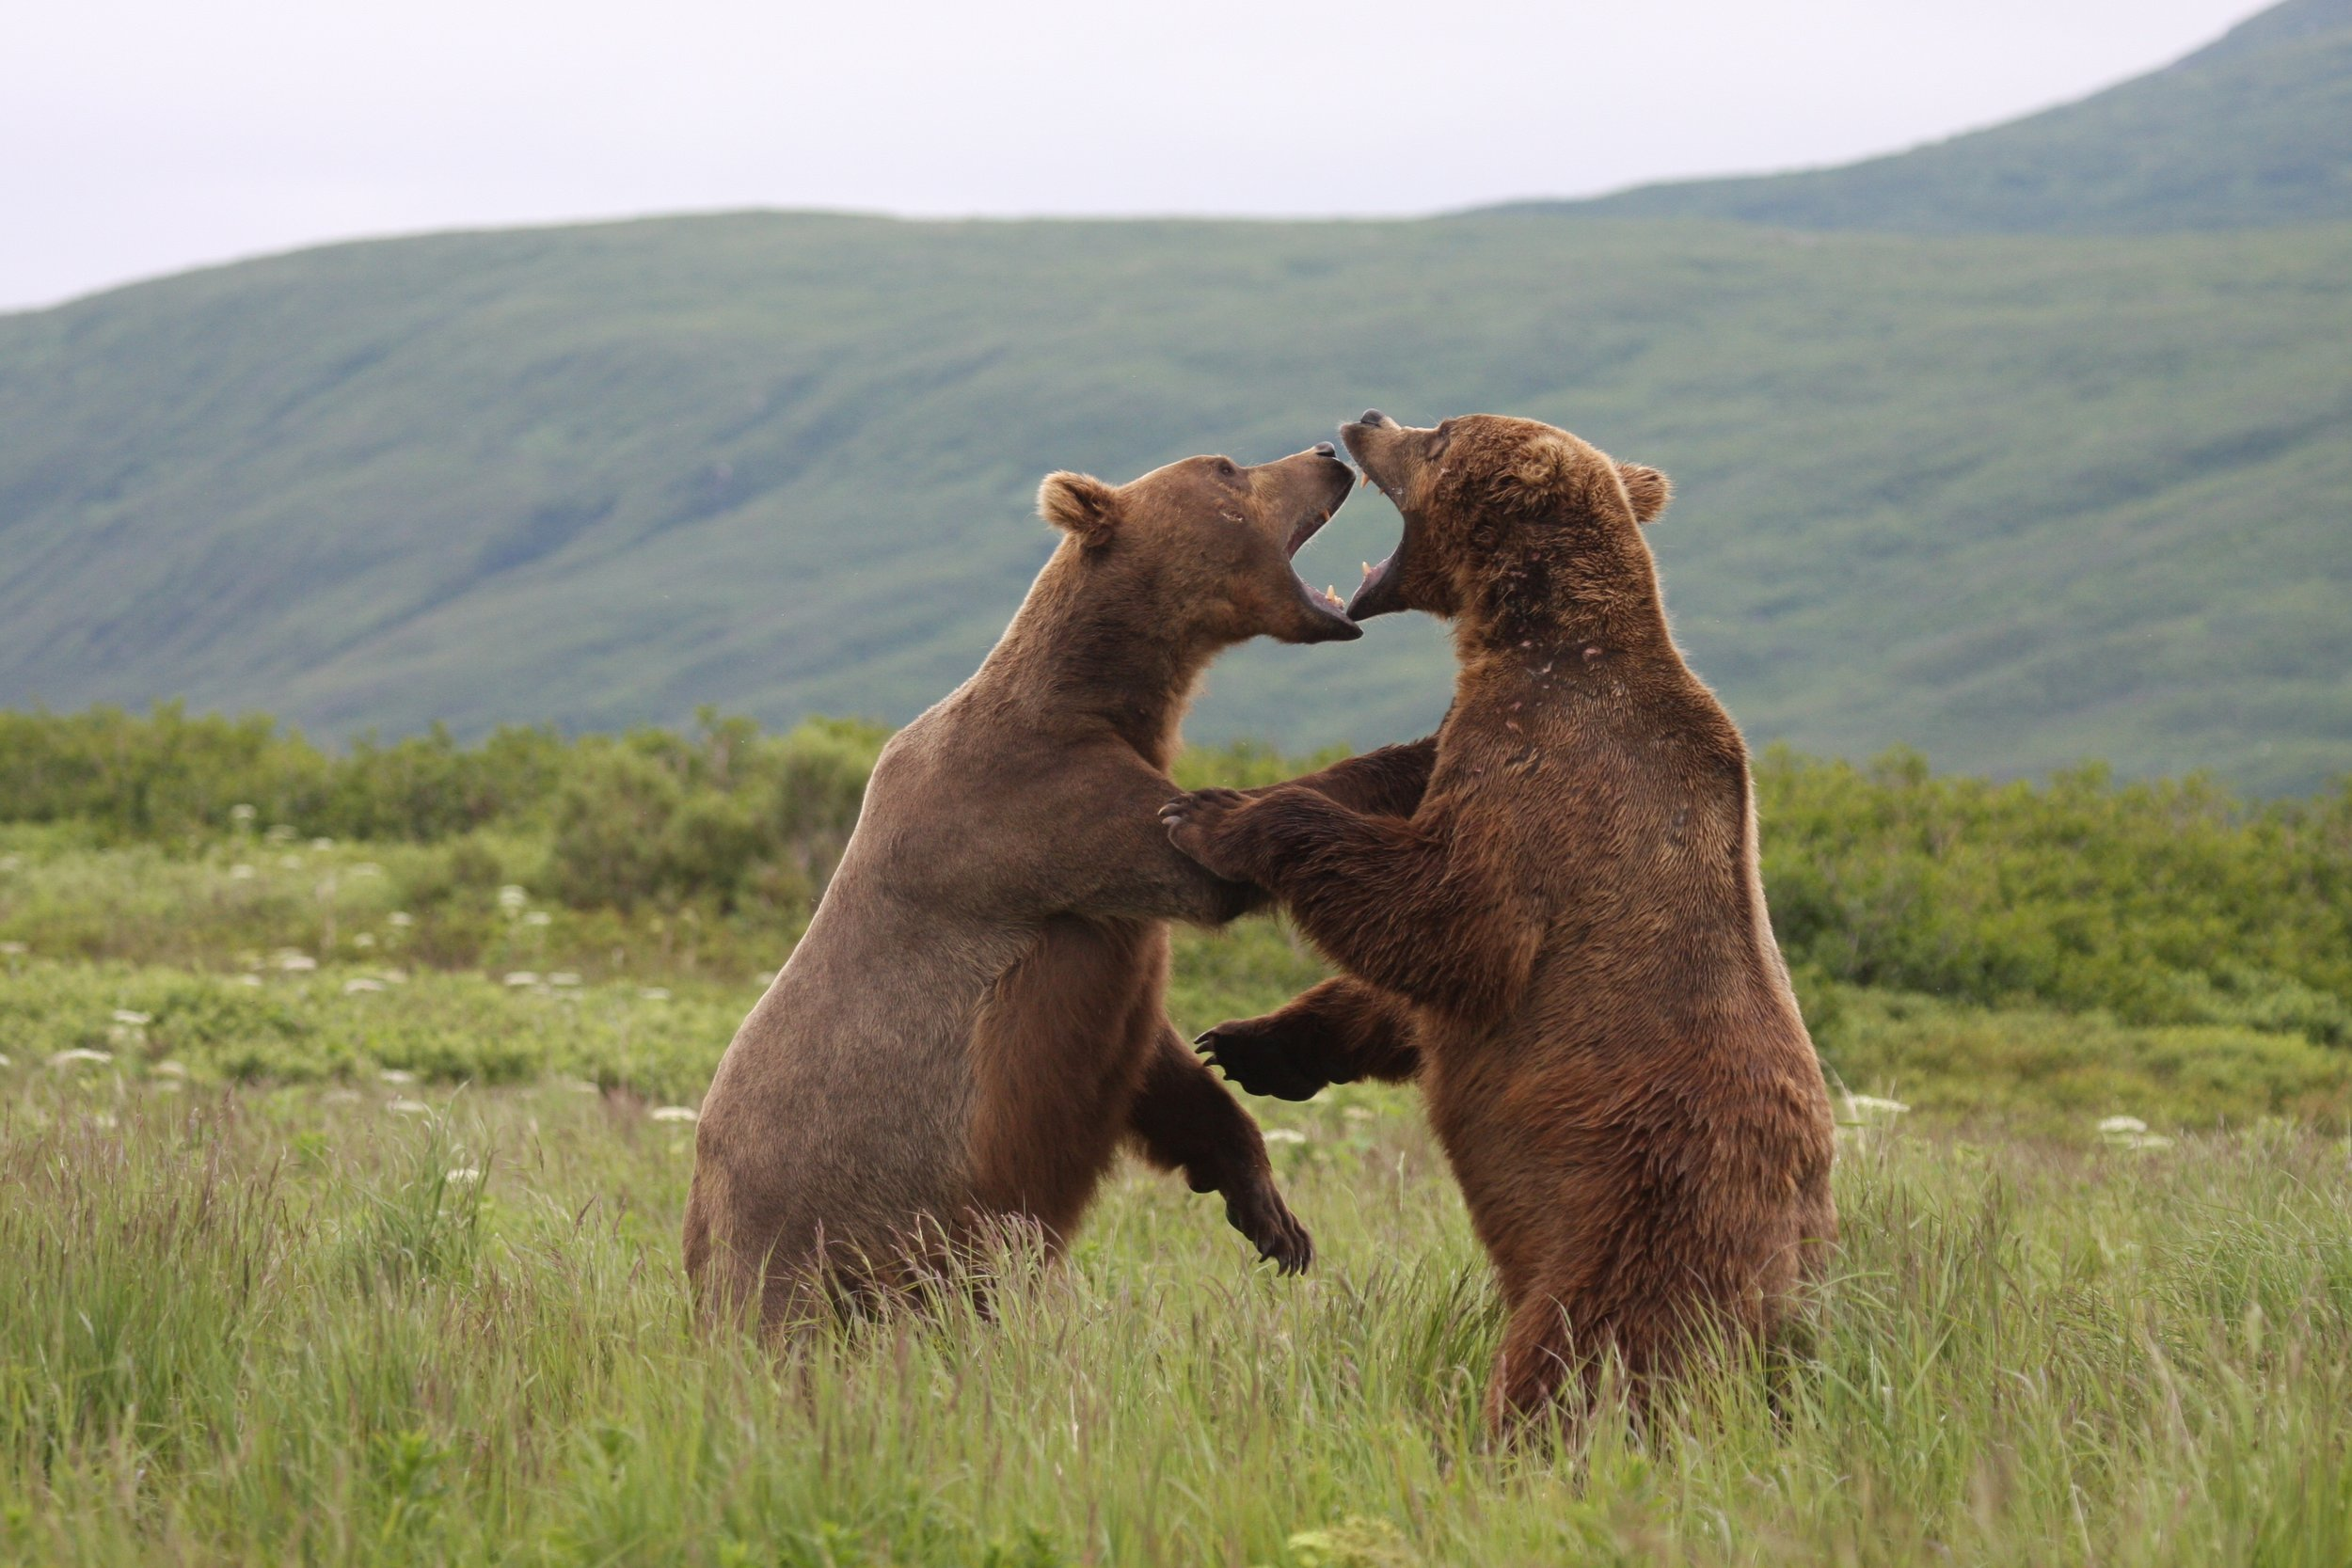 July- two adult males bears play